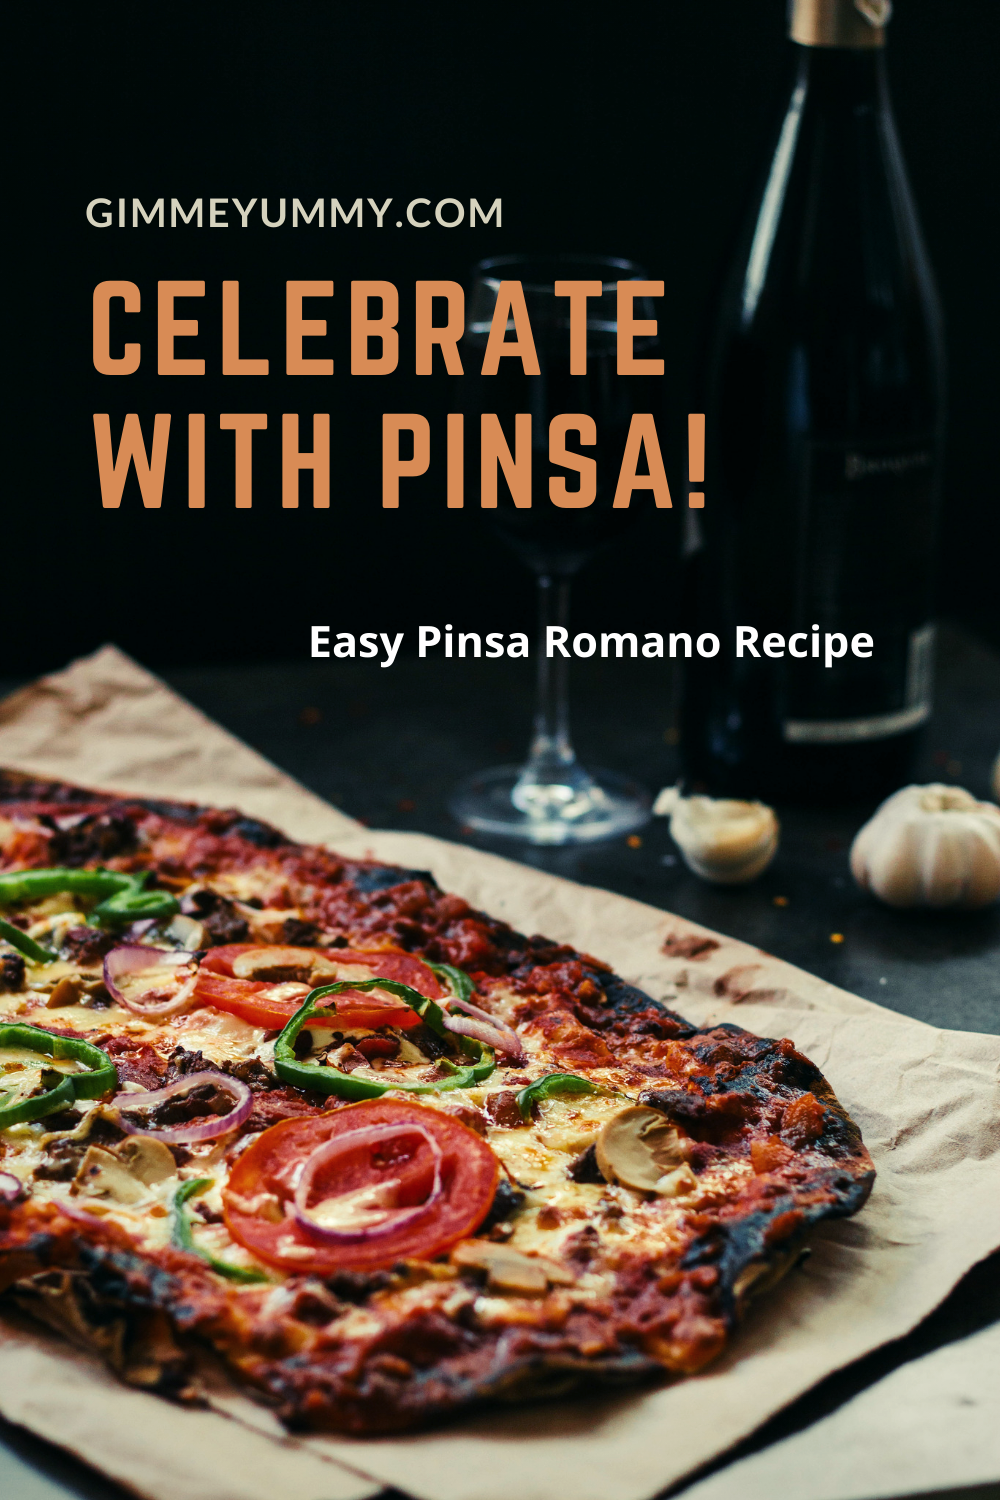 Traditional Pinsa Romana Pizza Recipe, No Yeast And Naturally Leavened With Sourdough Starter